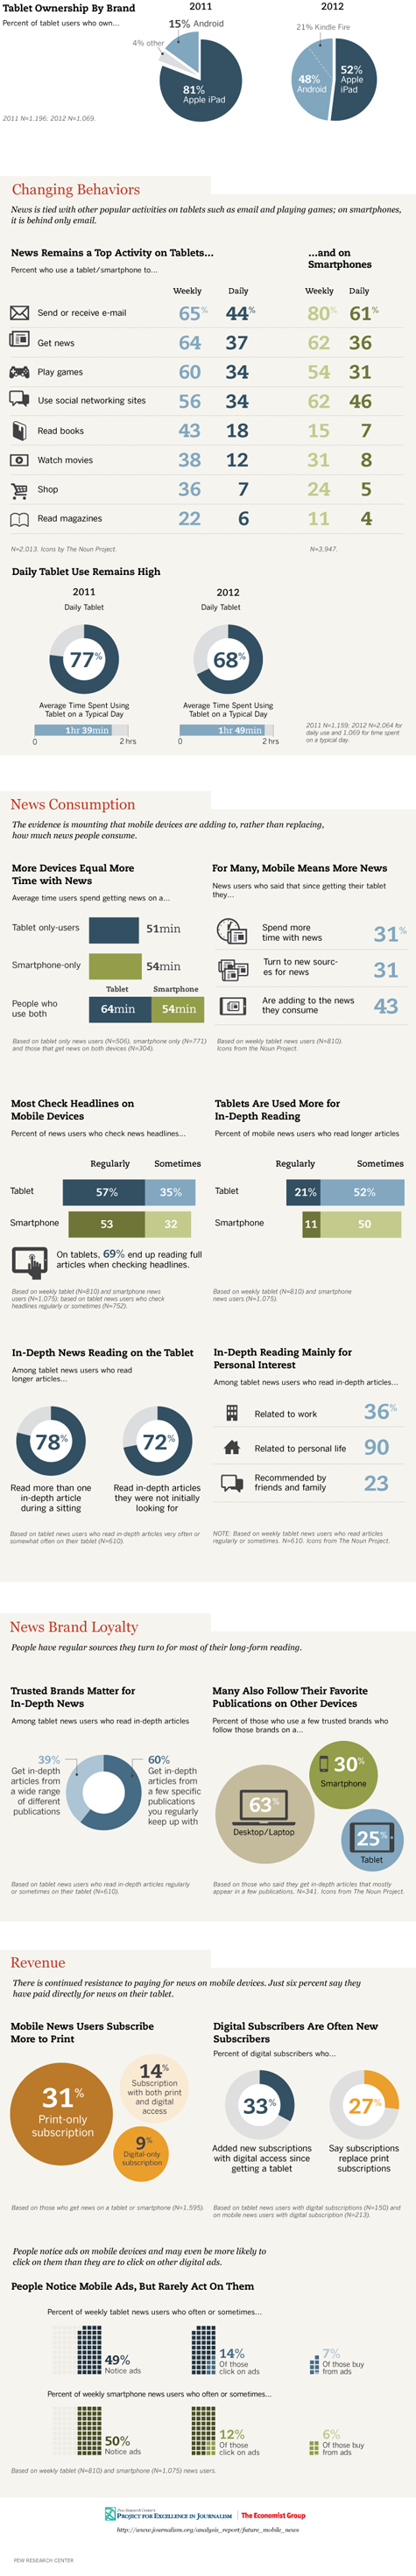 News Ranks High in Mobile Activity on Tablets and Smartphones